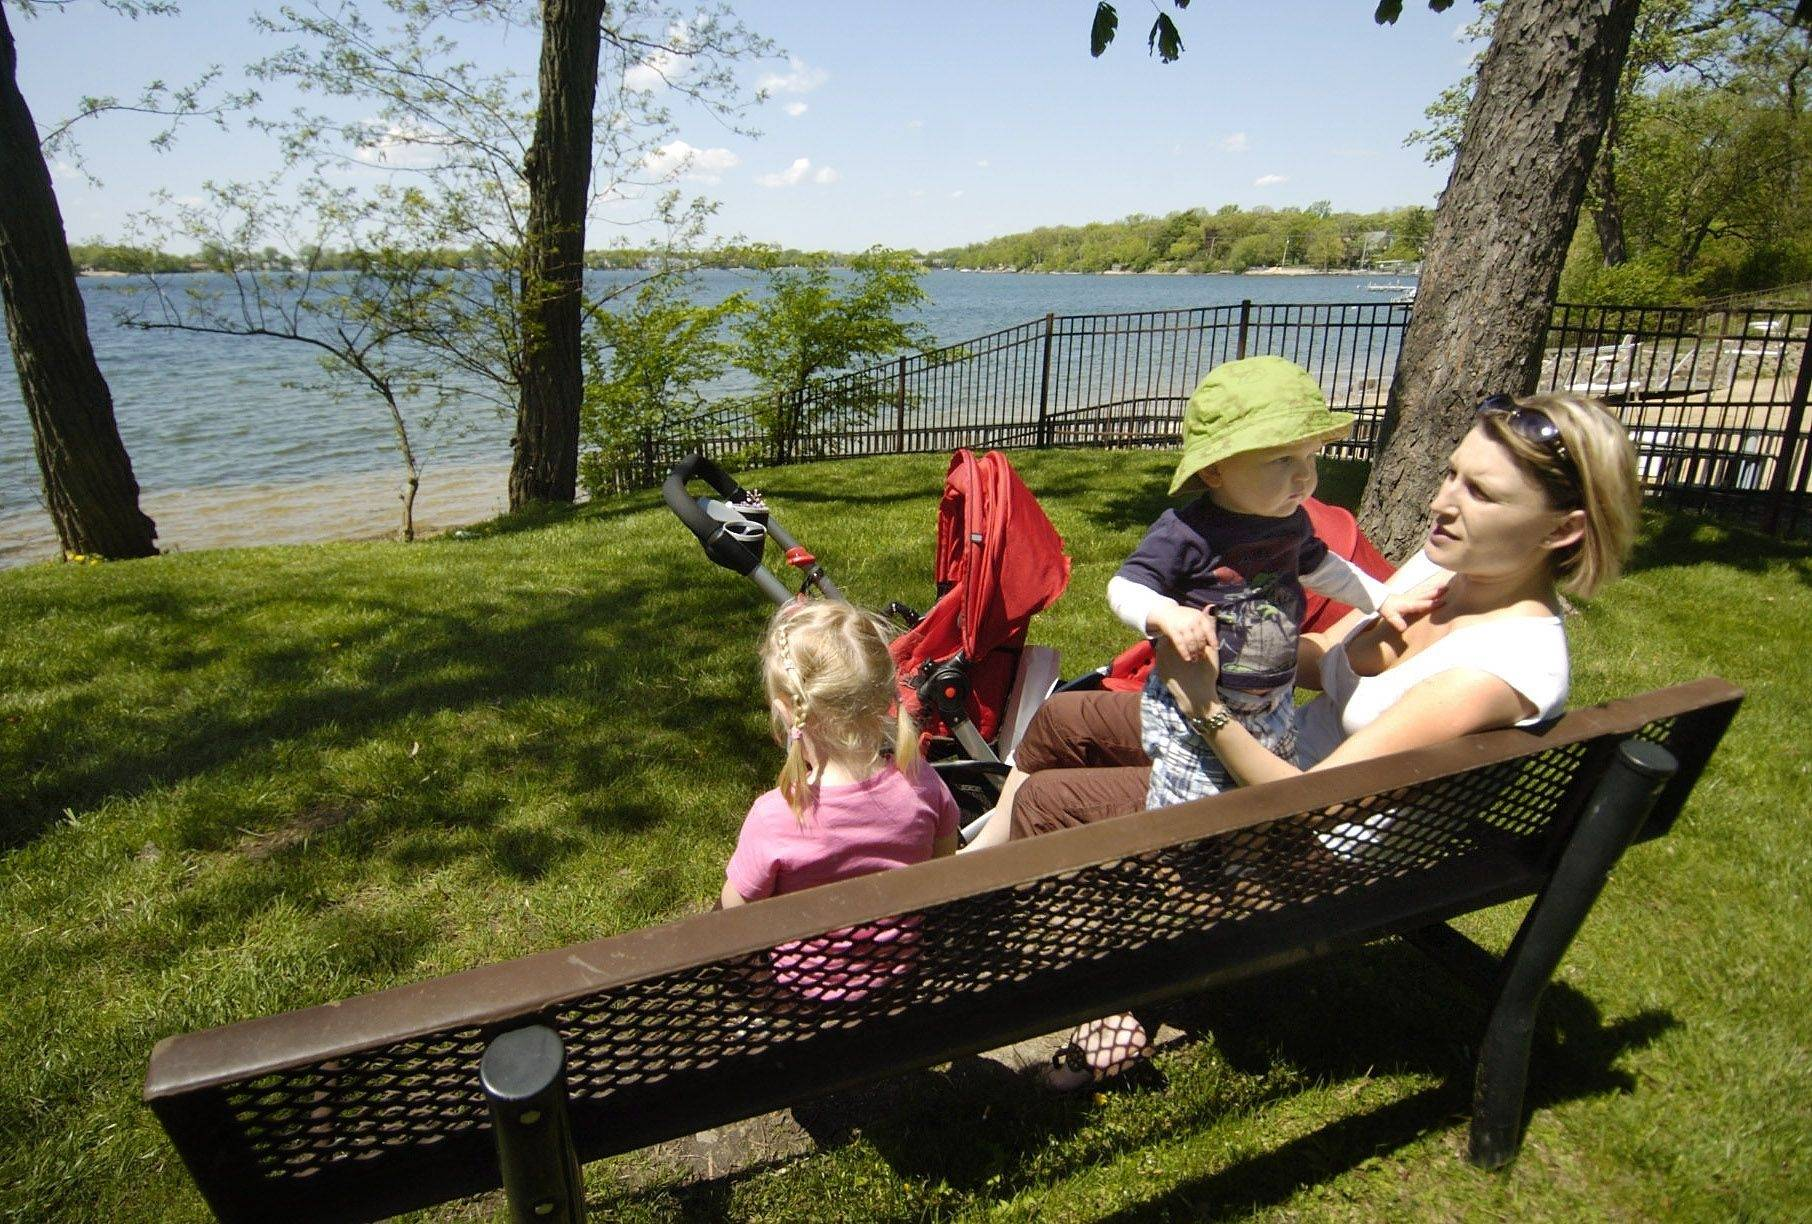 Lidia Grigaraviciene of Lake Zurich, with her daughter Greta and neighbor Tyler Kimes, spends a lot of time with her family at Breezewald Park in Lake Zurich because it's walking distance from her home and it's free.